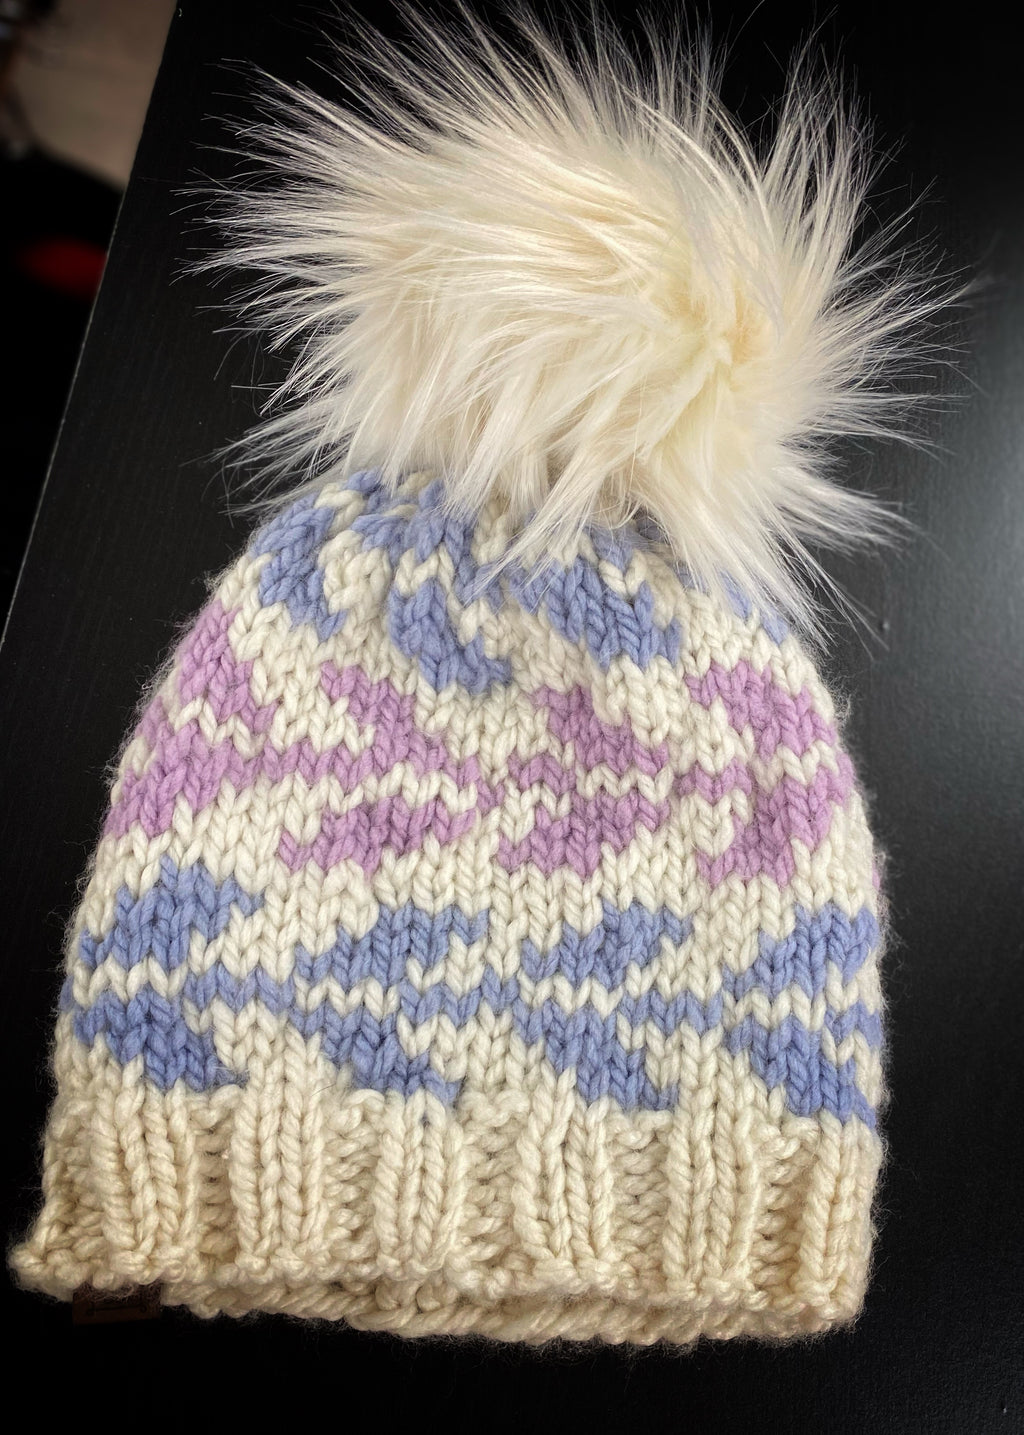 Ivory, Periwinkle, and Lavendar Stocking Hat